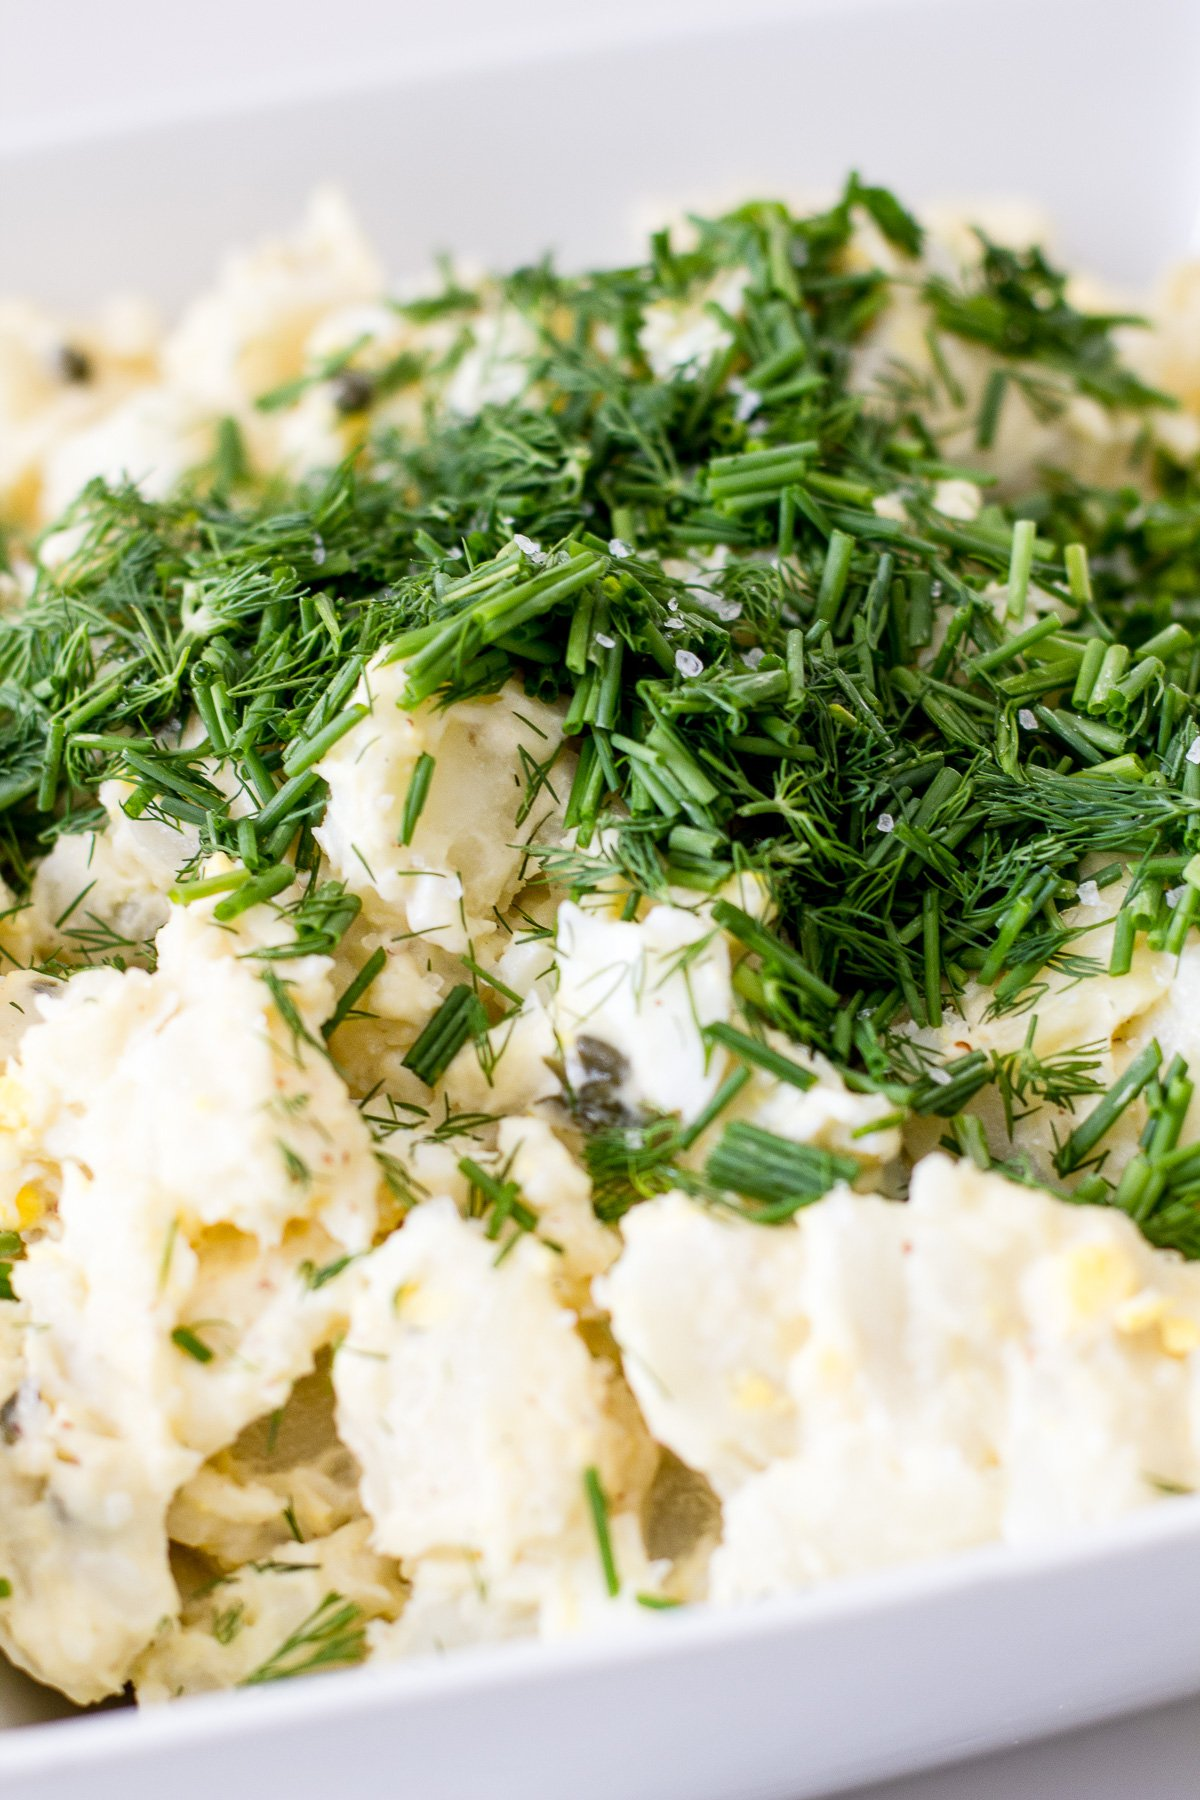 Potato Salad with Mortons Salt